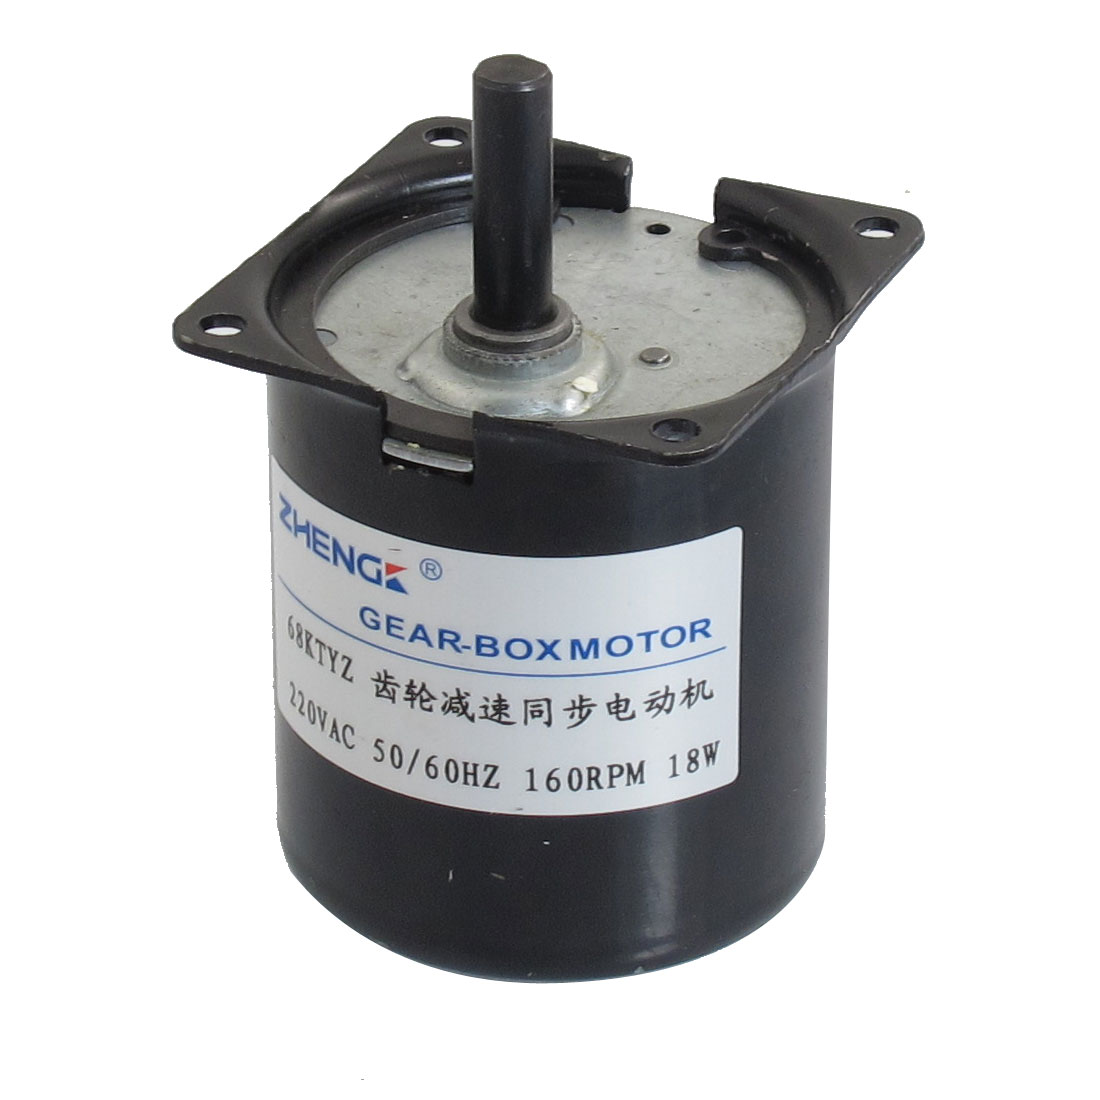 160RPM 18W 220VAC 8mm Shaft Diameter Geared Motor 68KTYZ w Capacitor